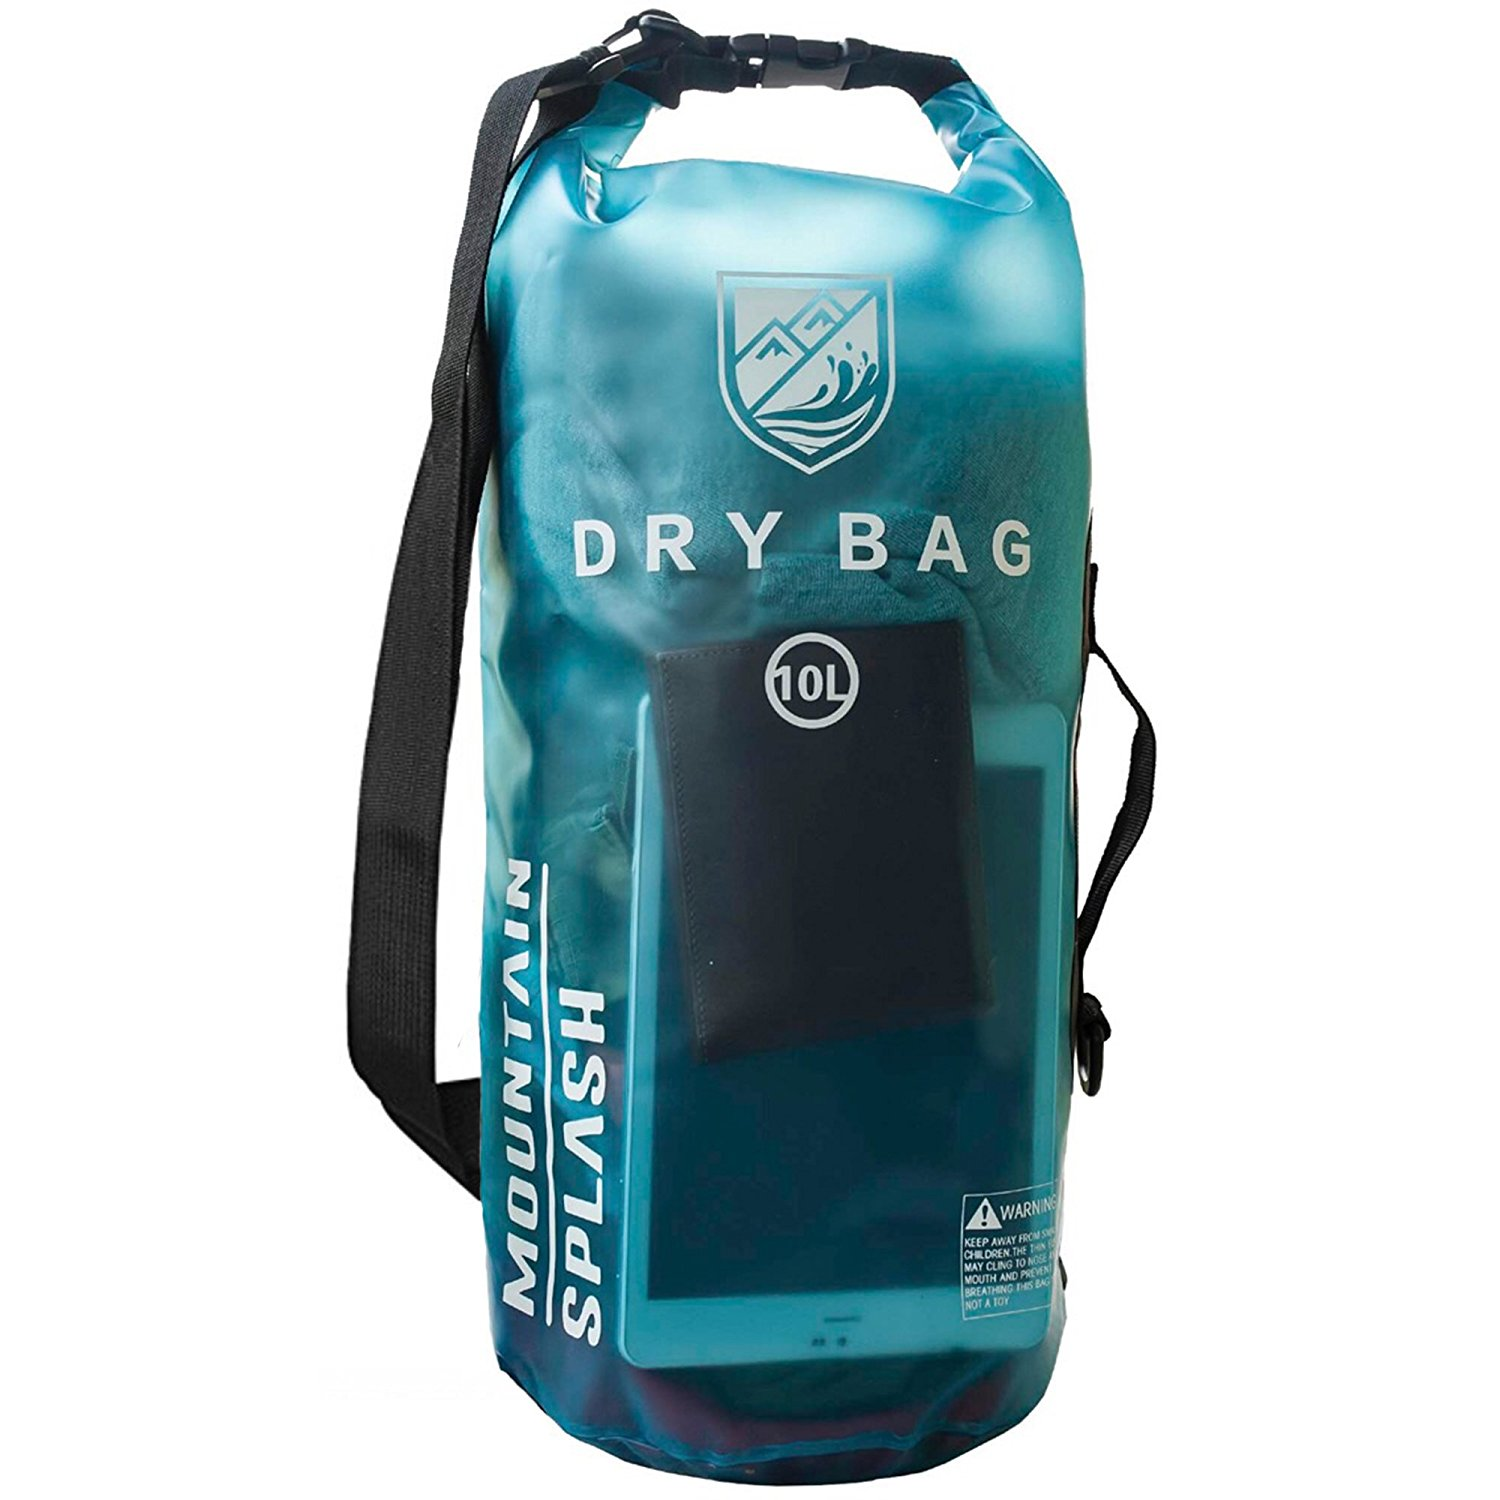 b8d44473cfca Cheap Backpack Shaped Dry Bag, find Backpack Shaped Dry Bag deals on ...